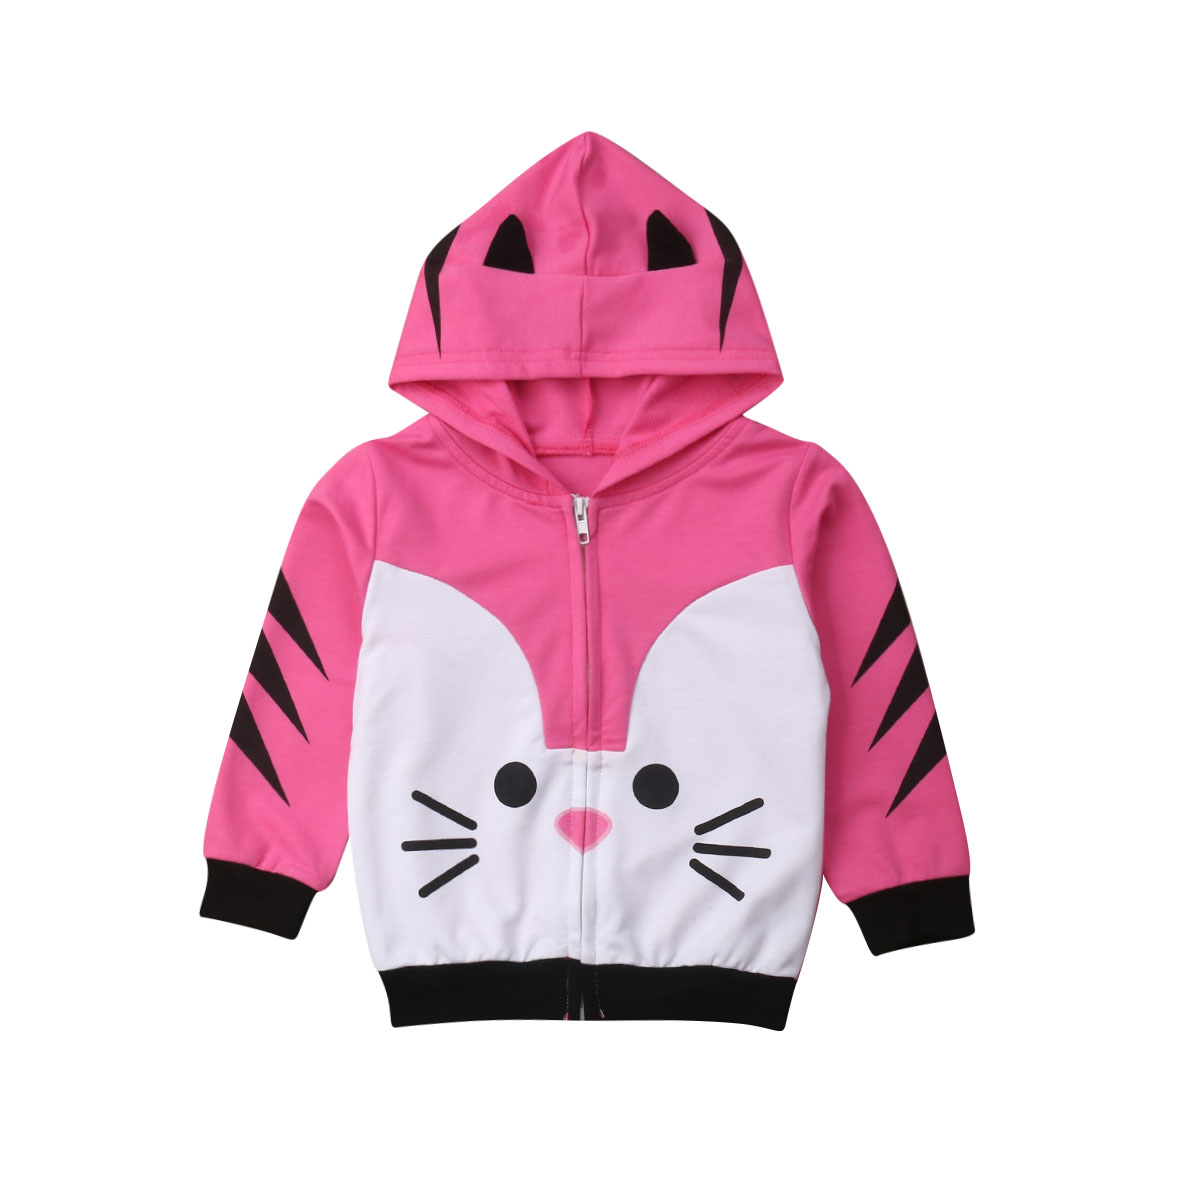 2019 New Brand Springs Hot Toddler Baby Kids Girls Cat  Cute Zippers Hoodies Sweatshirt Tops Coats Outerwear Clothes